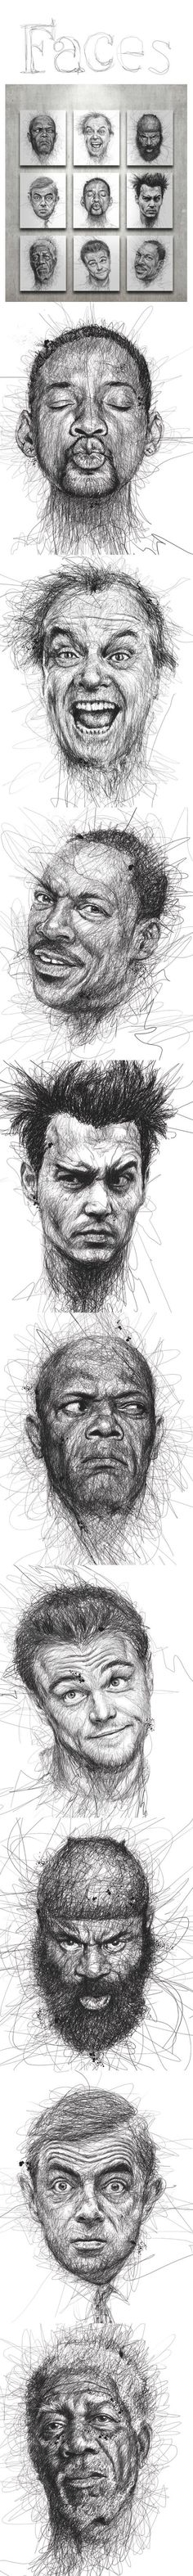 Faces by Vince Low - Gestural: